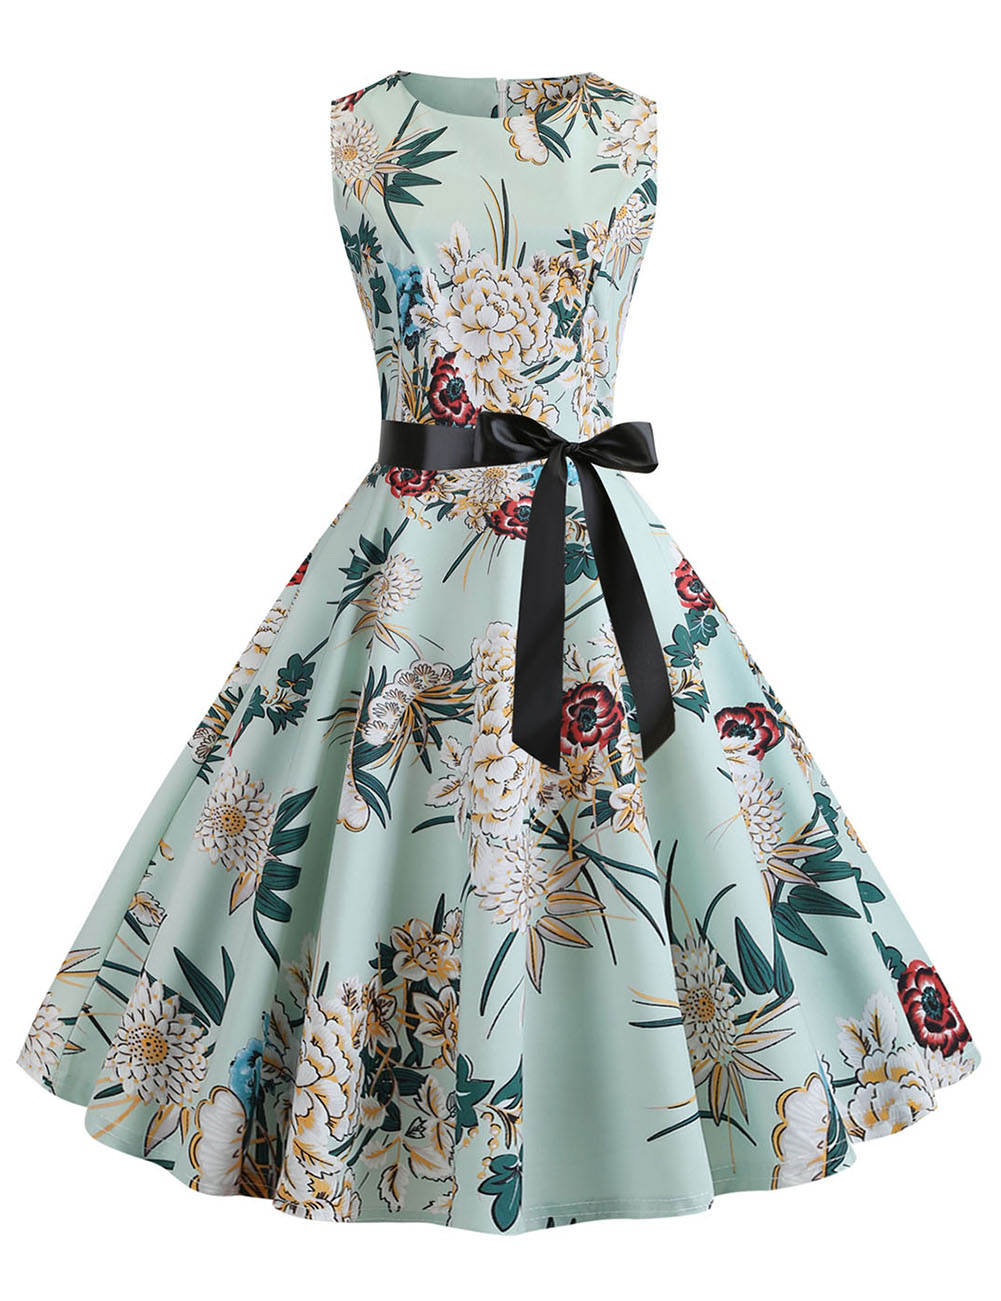 //cdn.affectcloud.com/hexinfashion/upload/imgs/Dress/Midi_Dress/VZ190452-M03/VZ190452-M03-201911055dc120a62dc36.jpg